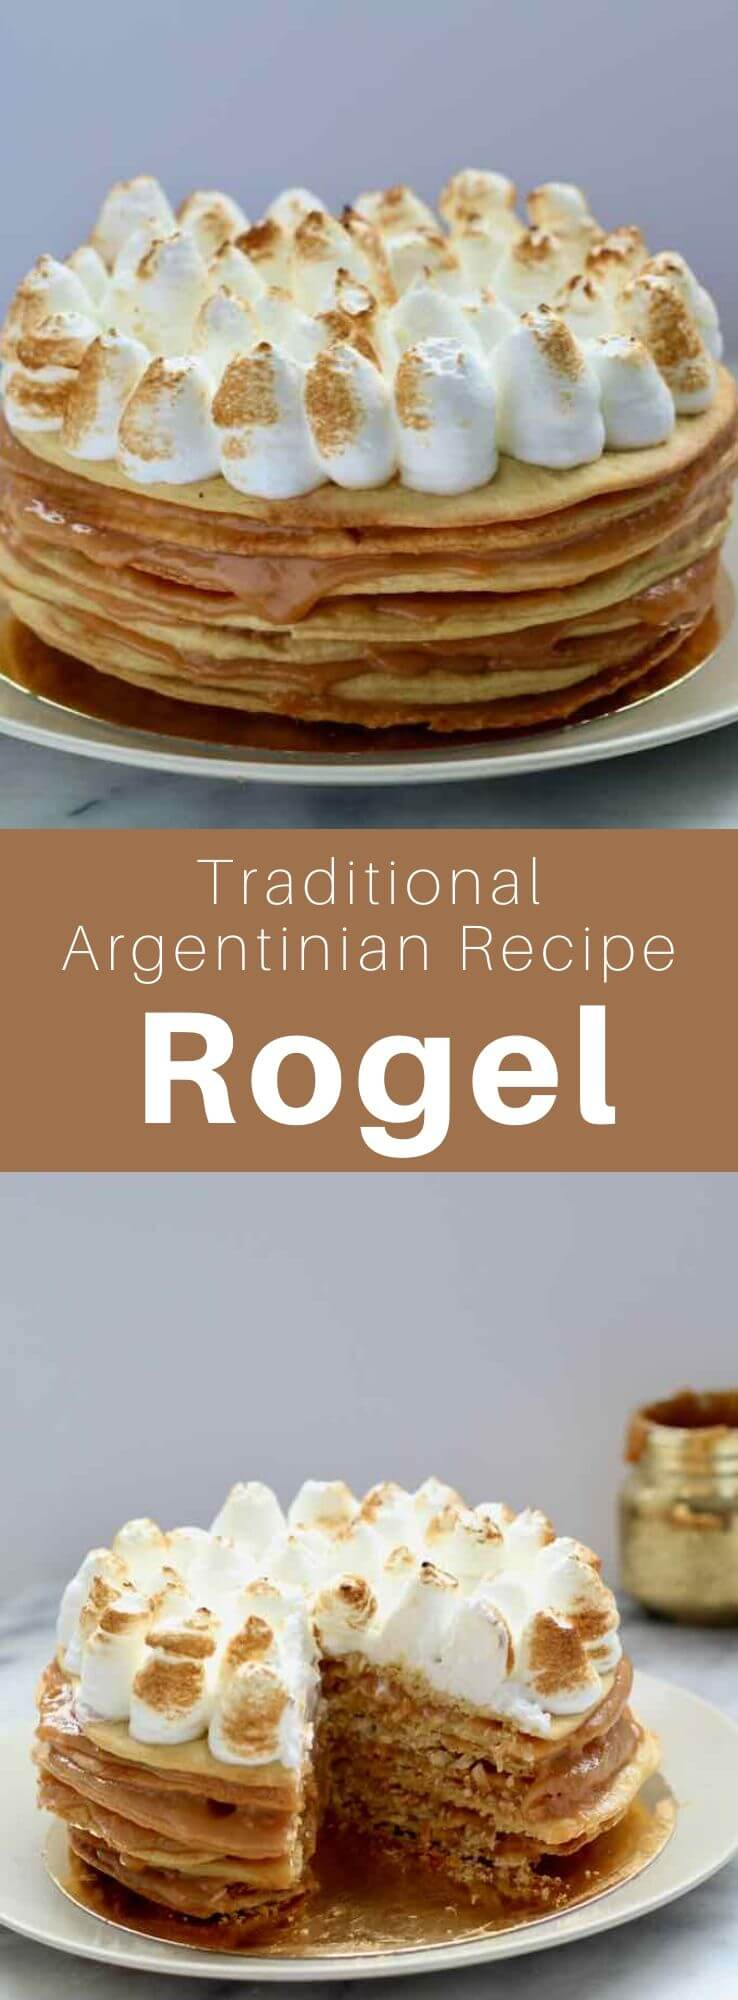 Rogel is often called the Argentine millefeuille. This popular dessert consists of crisp layers of dough filled with dulce de leche and covered with meringue. #Argentine #ArgentinianRecipe #ArgentinianFood #ArgentinianCuisine #WorldCuisine #196flavors